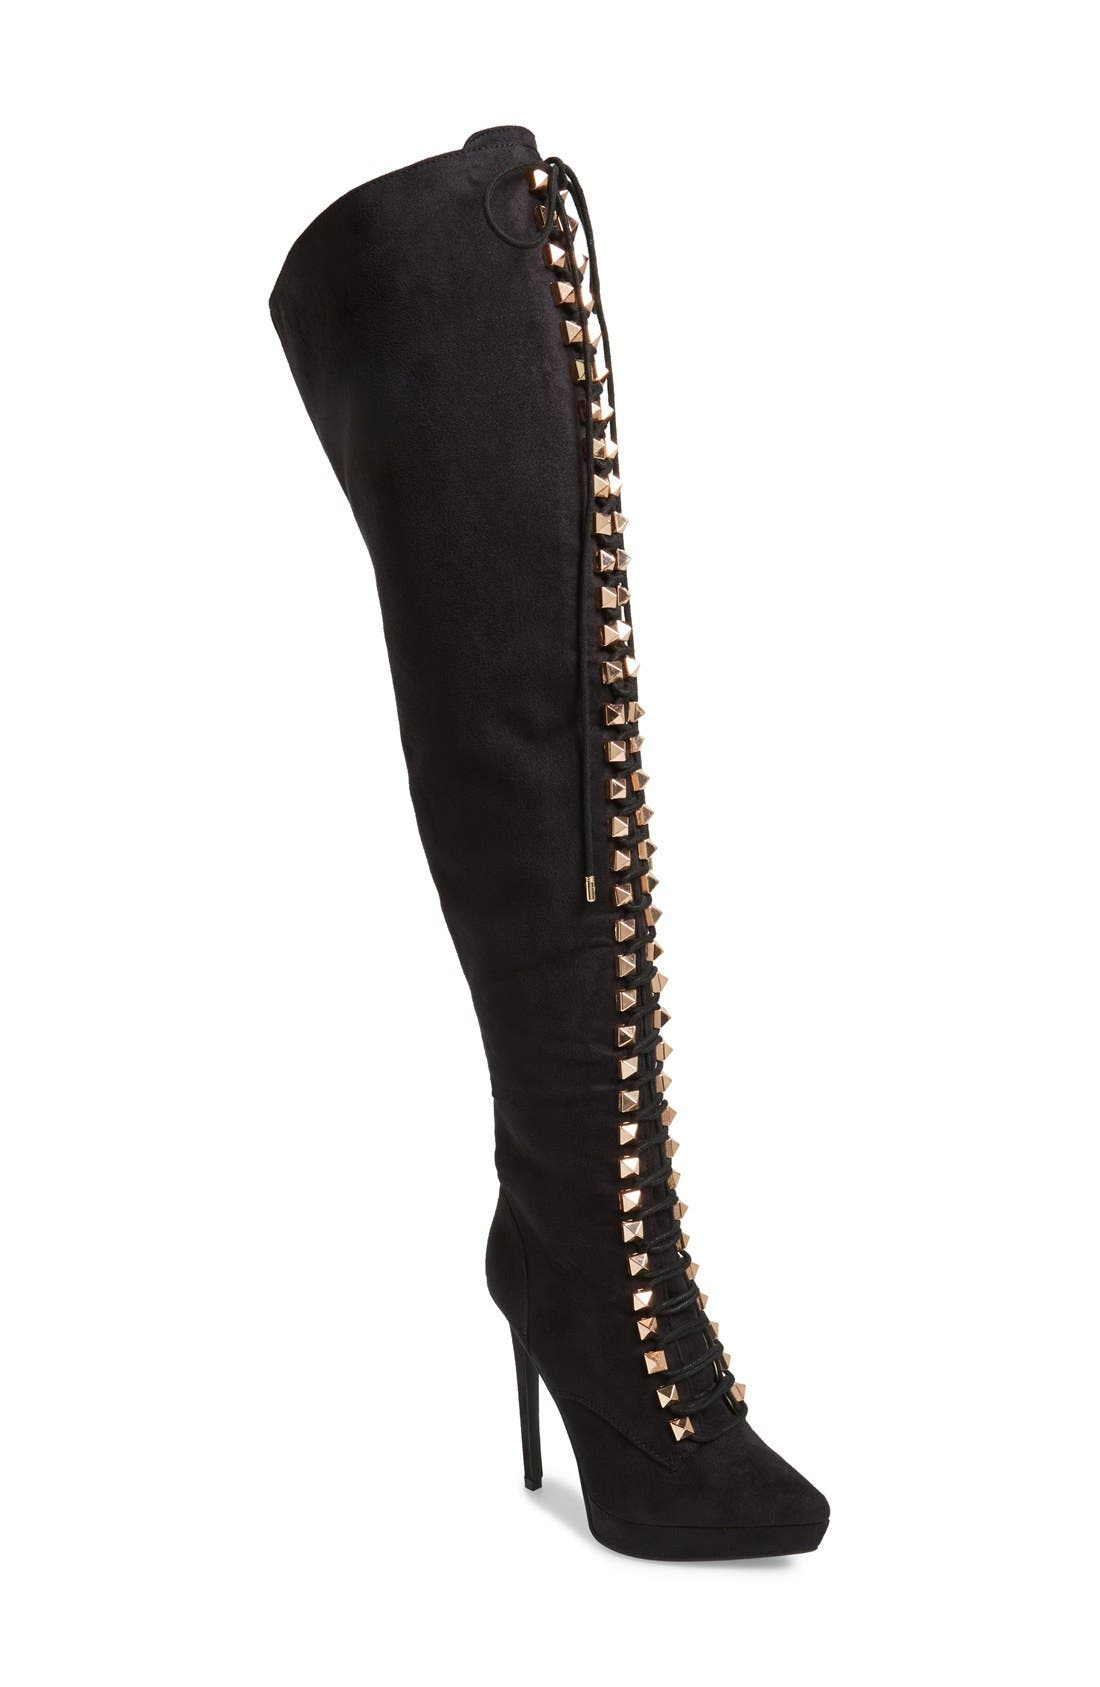 Alternate Image 1 Selected - ZiGi girl 'Payce' Over The Knee Boot (Women)